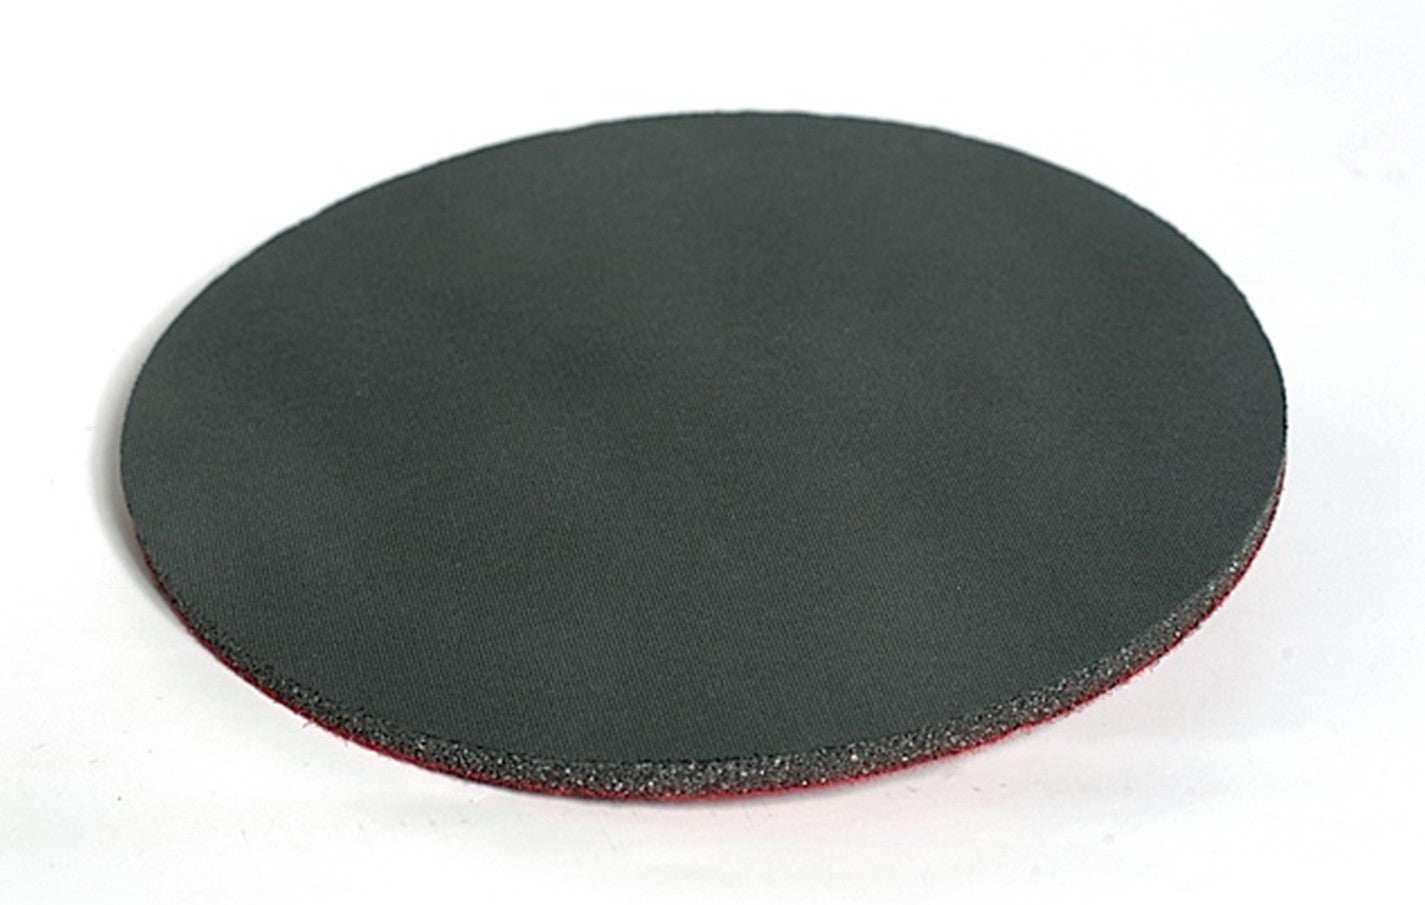 Mirka Abralon 6 in. Foam Grip Disc 2000 Grit, 20 pk.